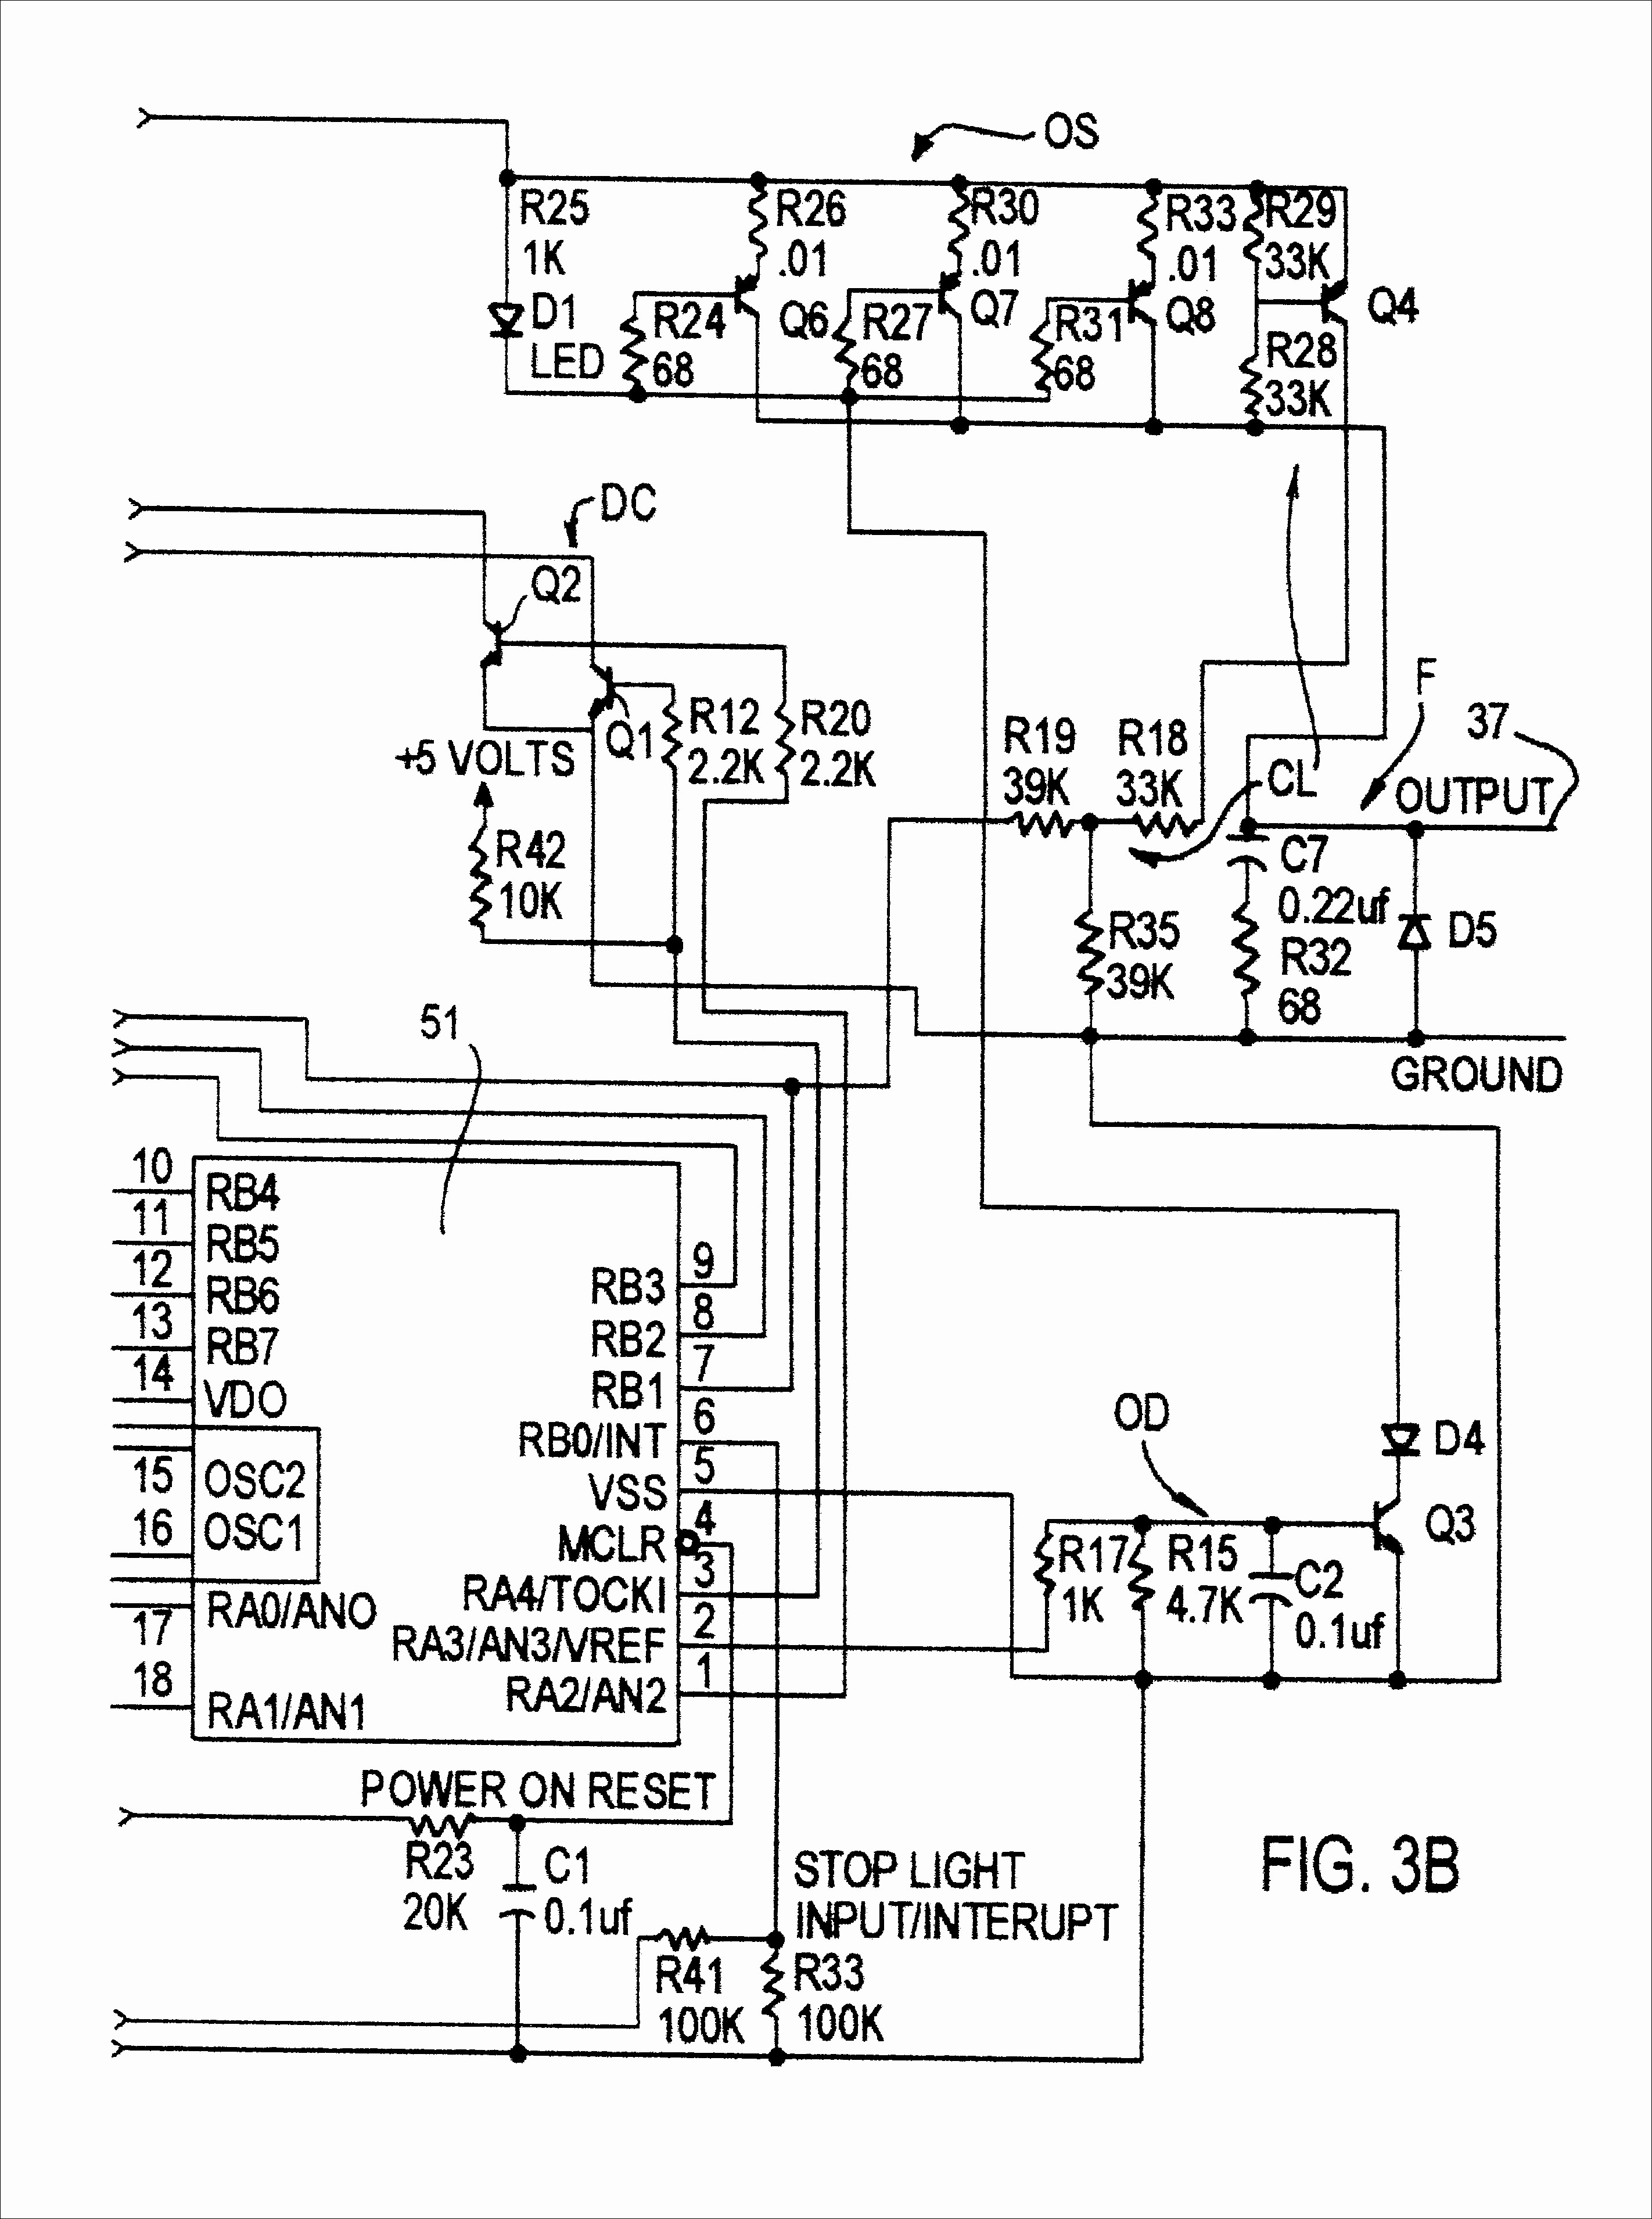 Basic Motorcycle Engine Diagram Car Engine Schematics Smart Wiring Diagrams • Of Basic Motorcycle Engine Diagram